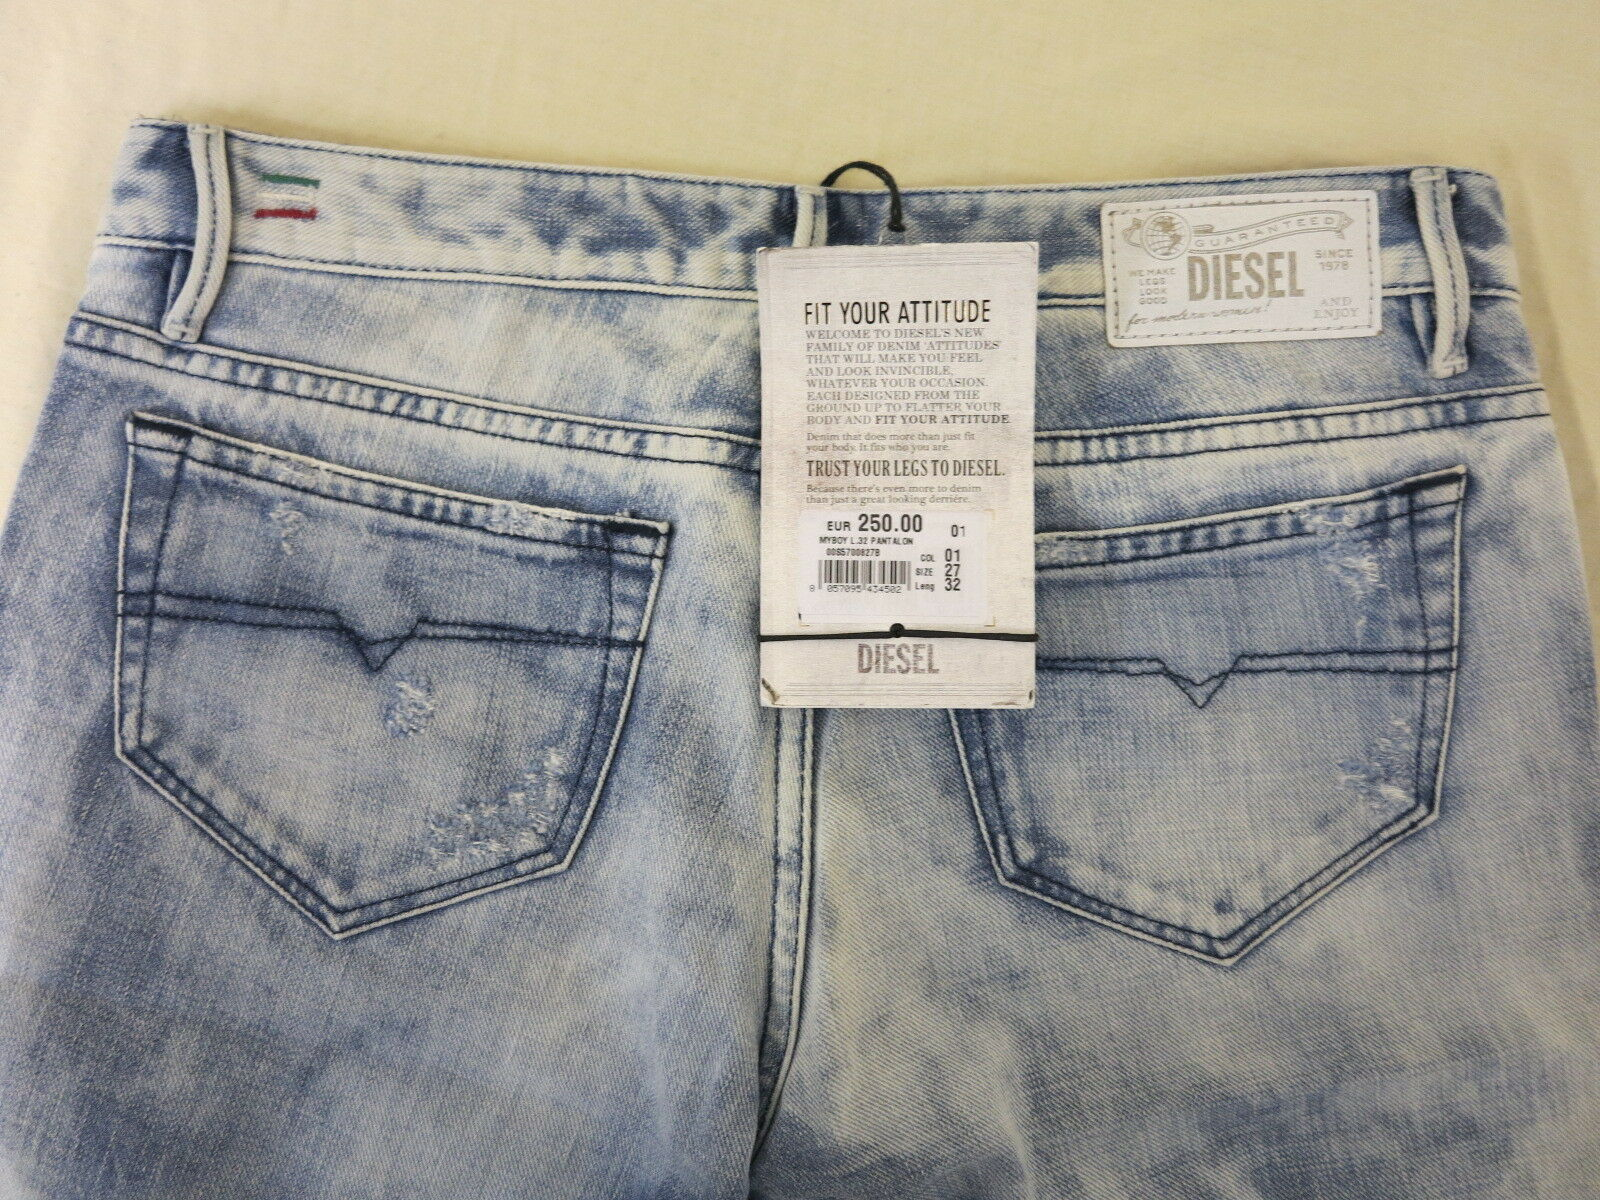 DIESEL MYBOY STRAIGHT LEG LOW WAIST W27 L32 Blau REGULAR SLIM-STRAIGHT ITALY 250